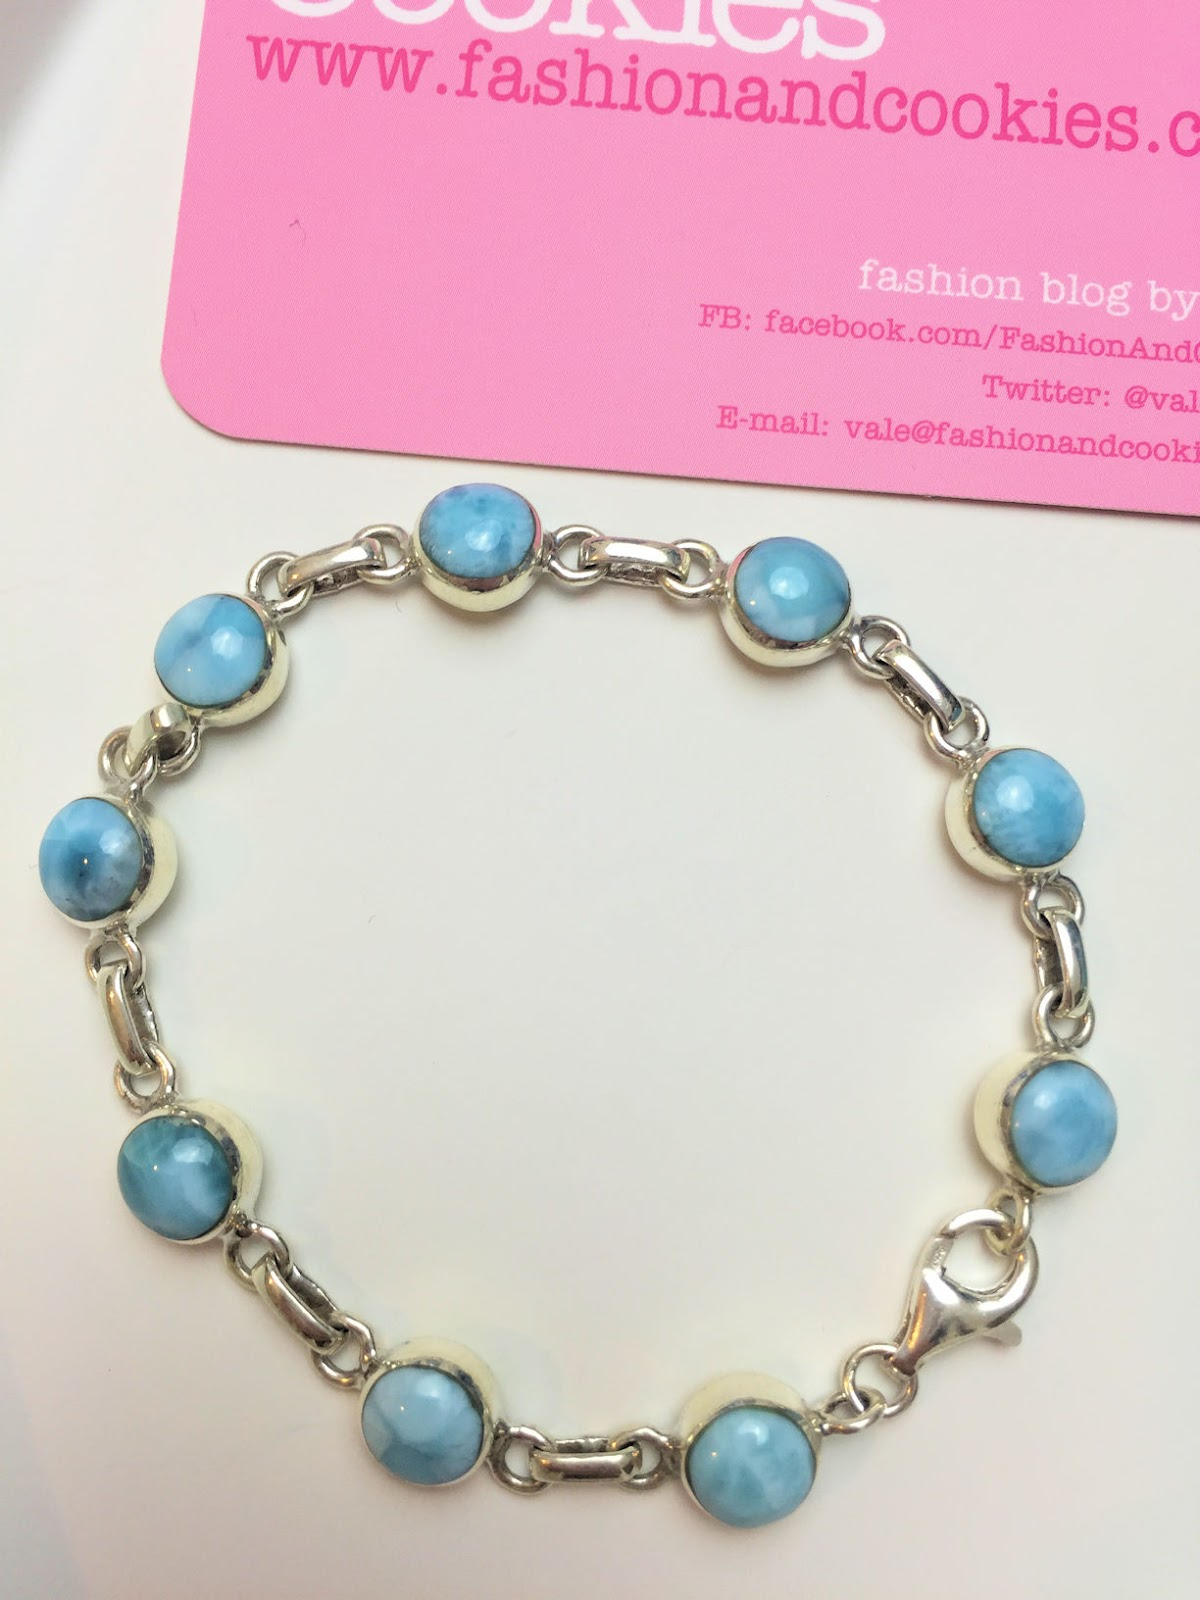 Larimar stone jewelry, Larimar bracelet in sterling silver on Fashion and Cookies fashion blog, fashion blogger style